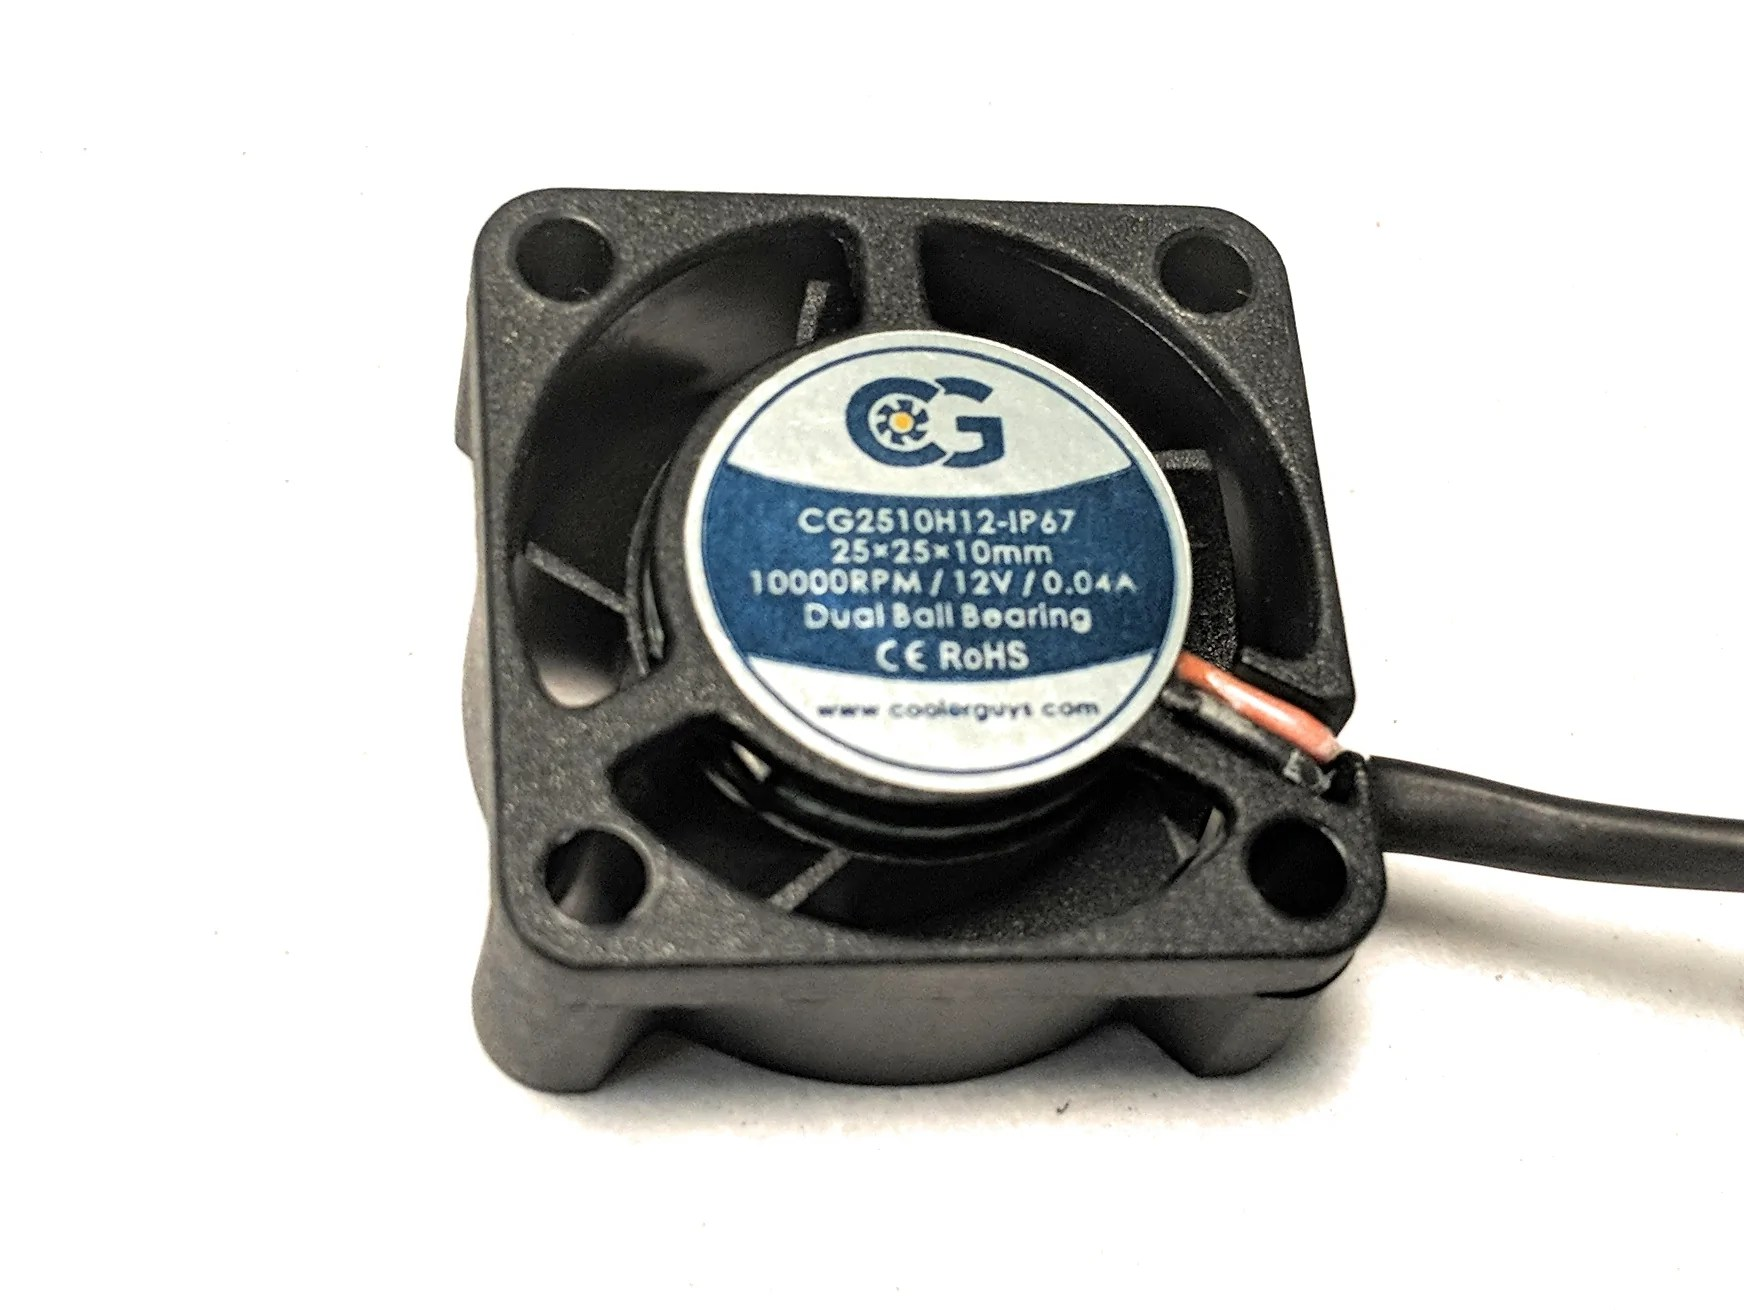 12v Ip67 Coolerguys 25mm 25x25x10 Ip67 12v Fan